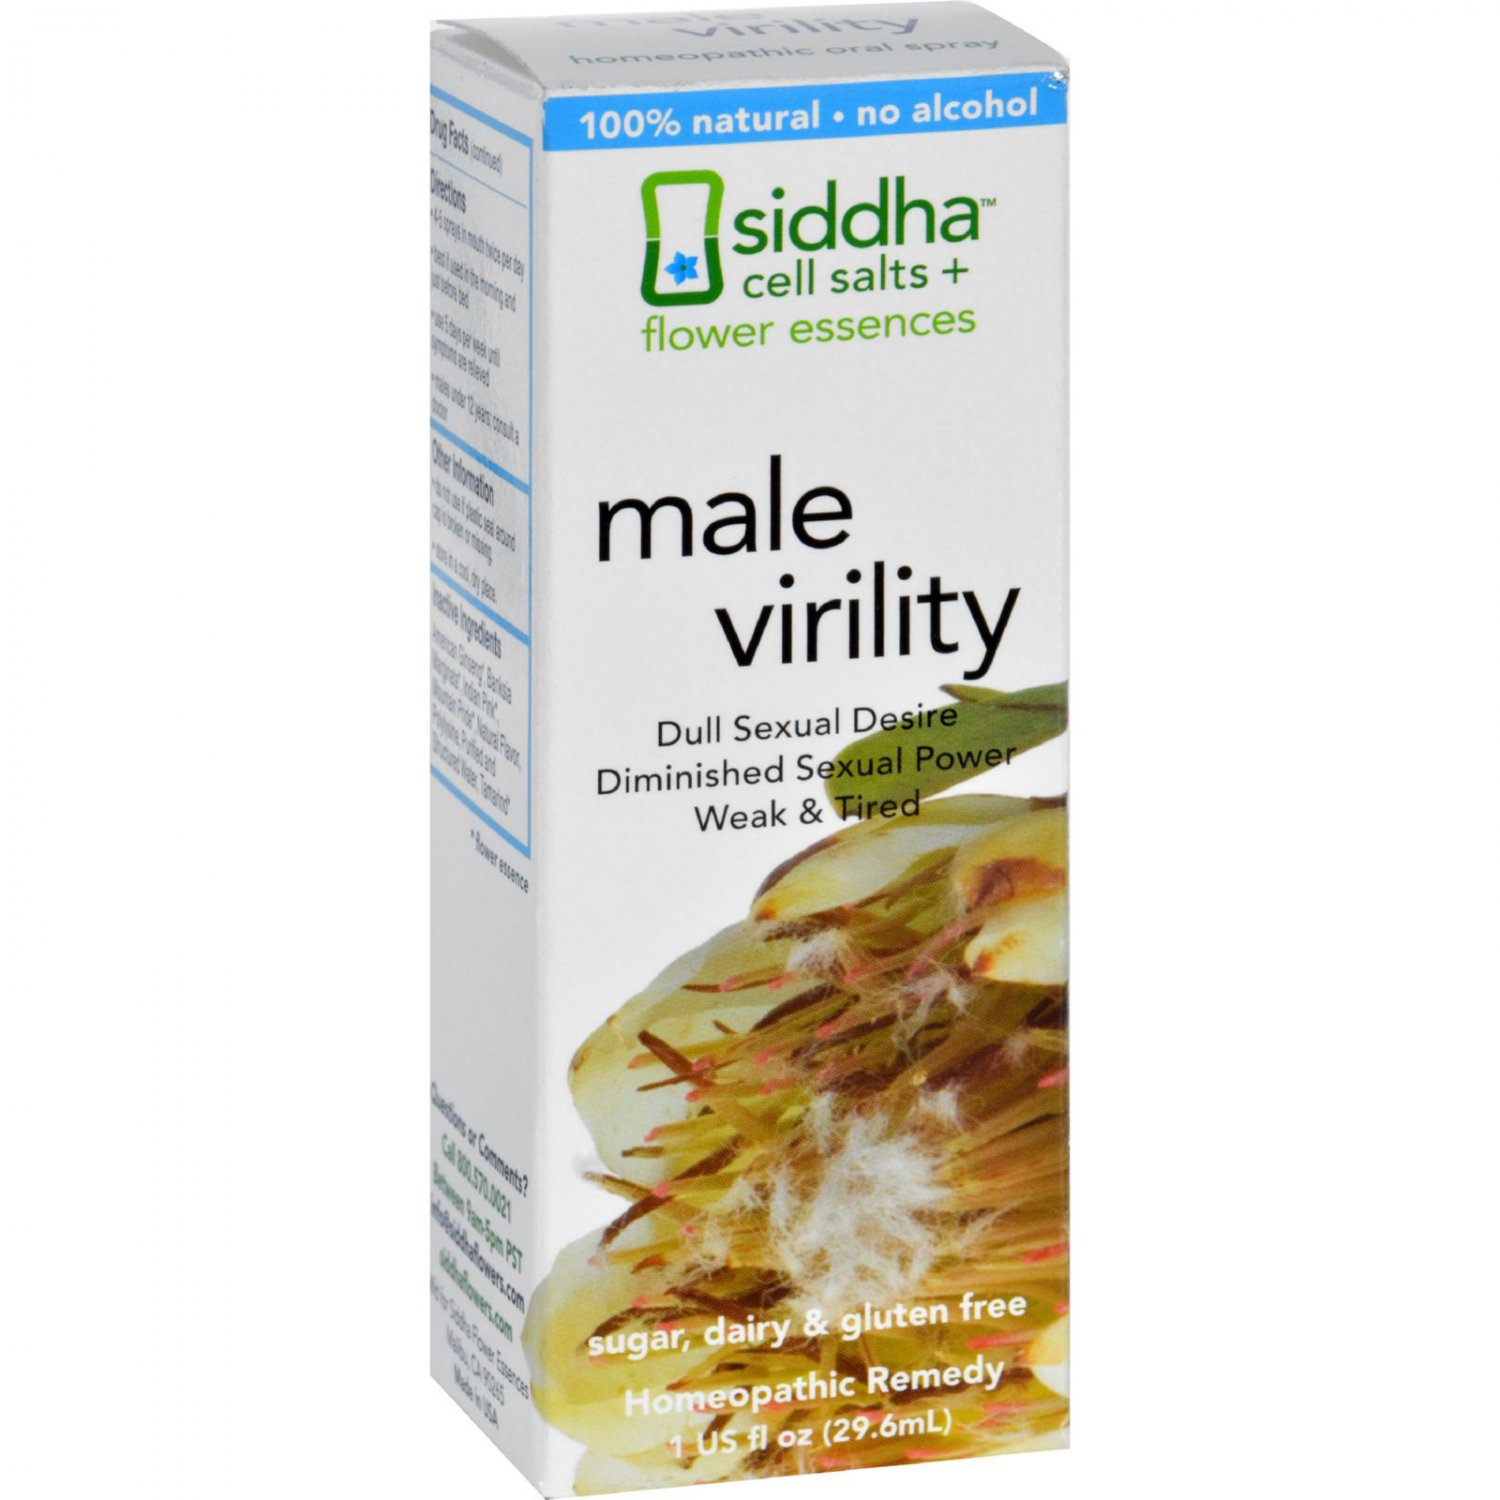 Siddha Flower Essences Male Virility - 1 fl oz